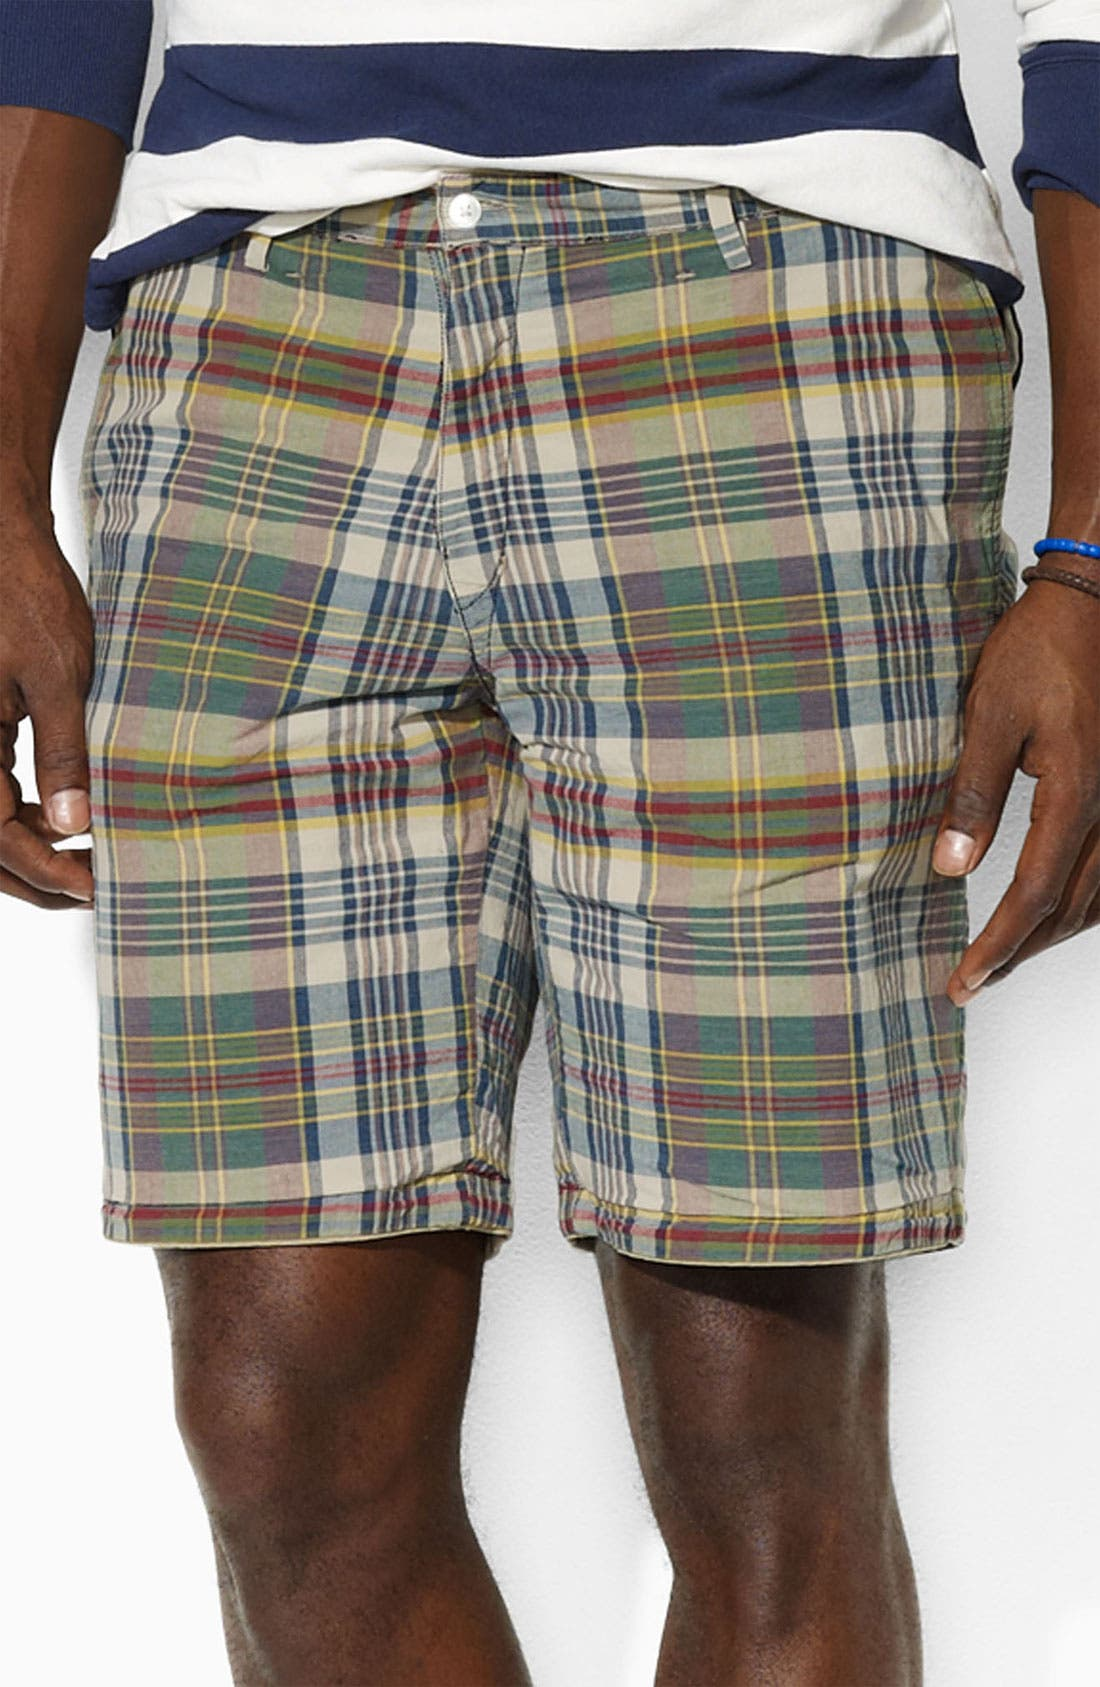 Main Image - Polo Ralph Lauren 'Country Club' Reversible Shorts